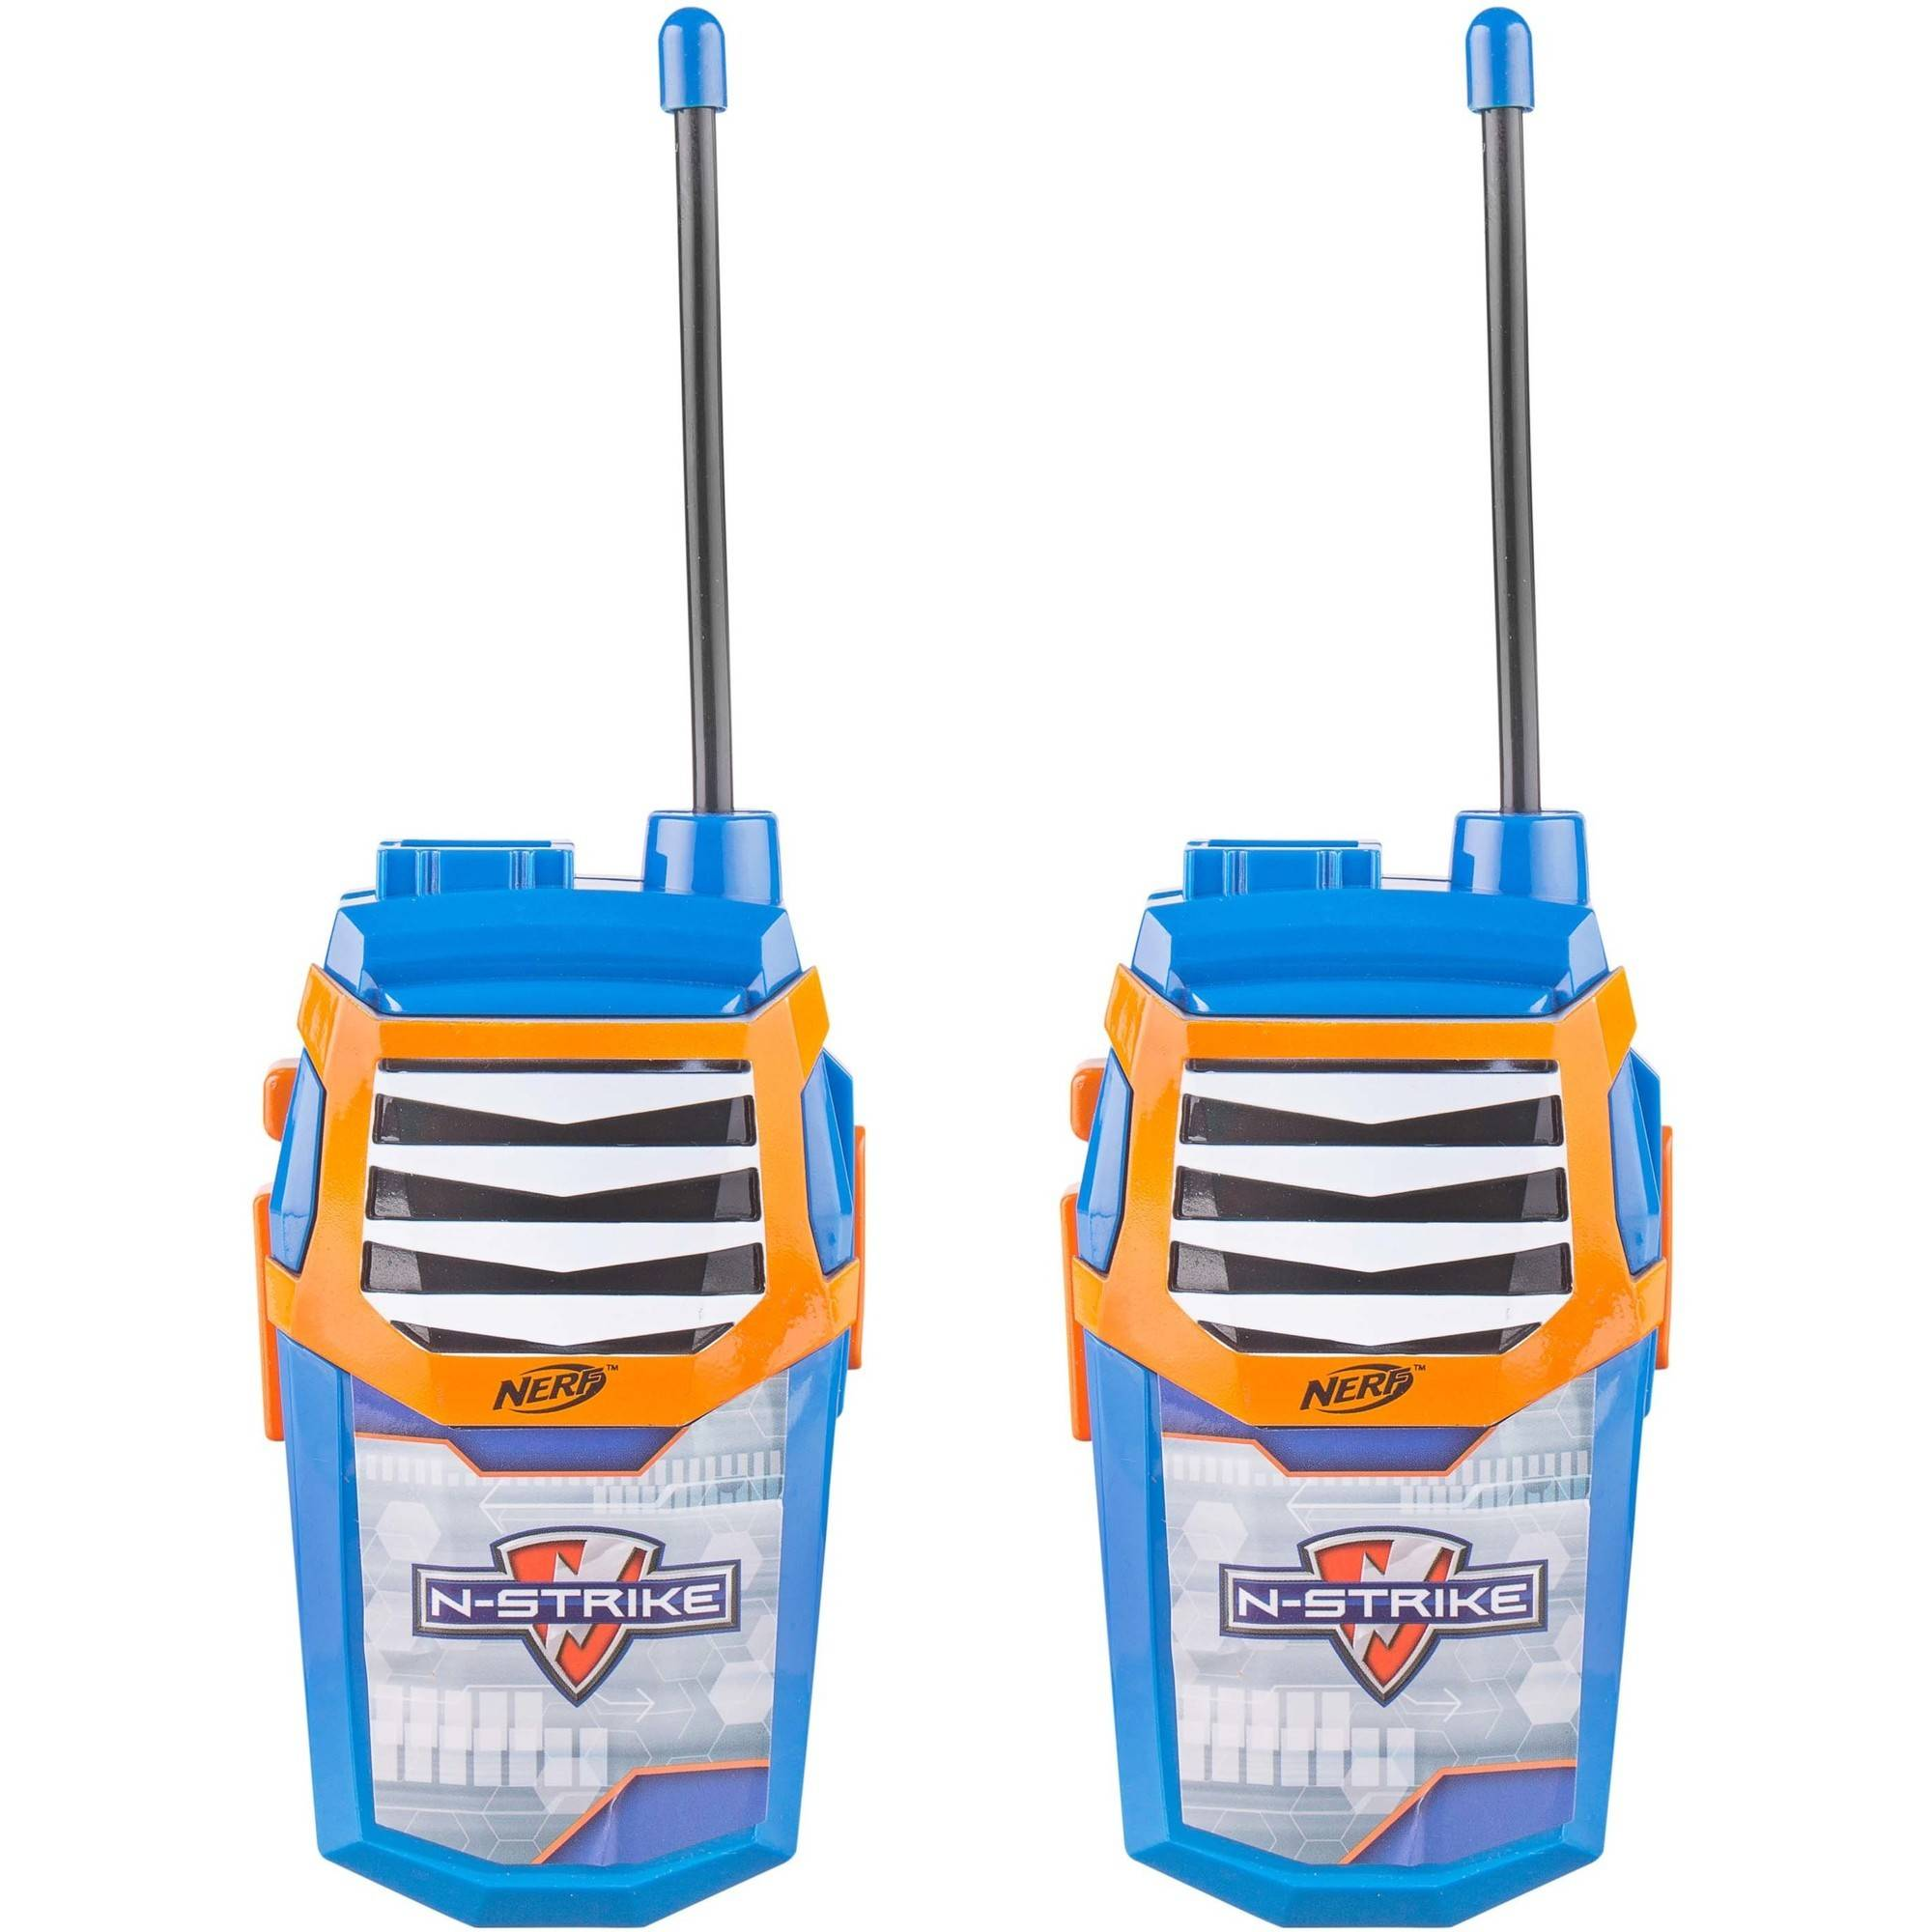 Nerf WT3-01056 Night Action 2-in-1 Walkie Talkies with Built In Flashlight